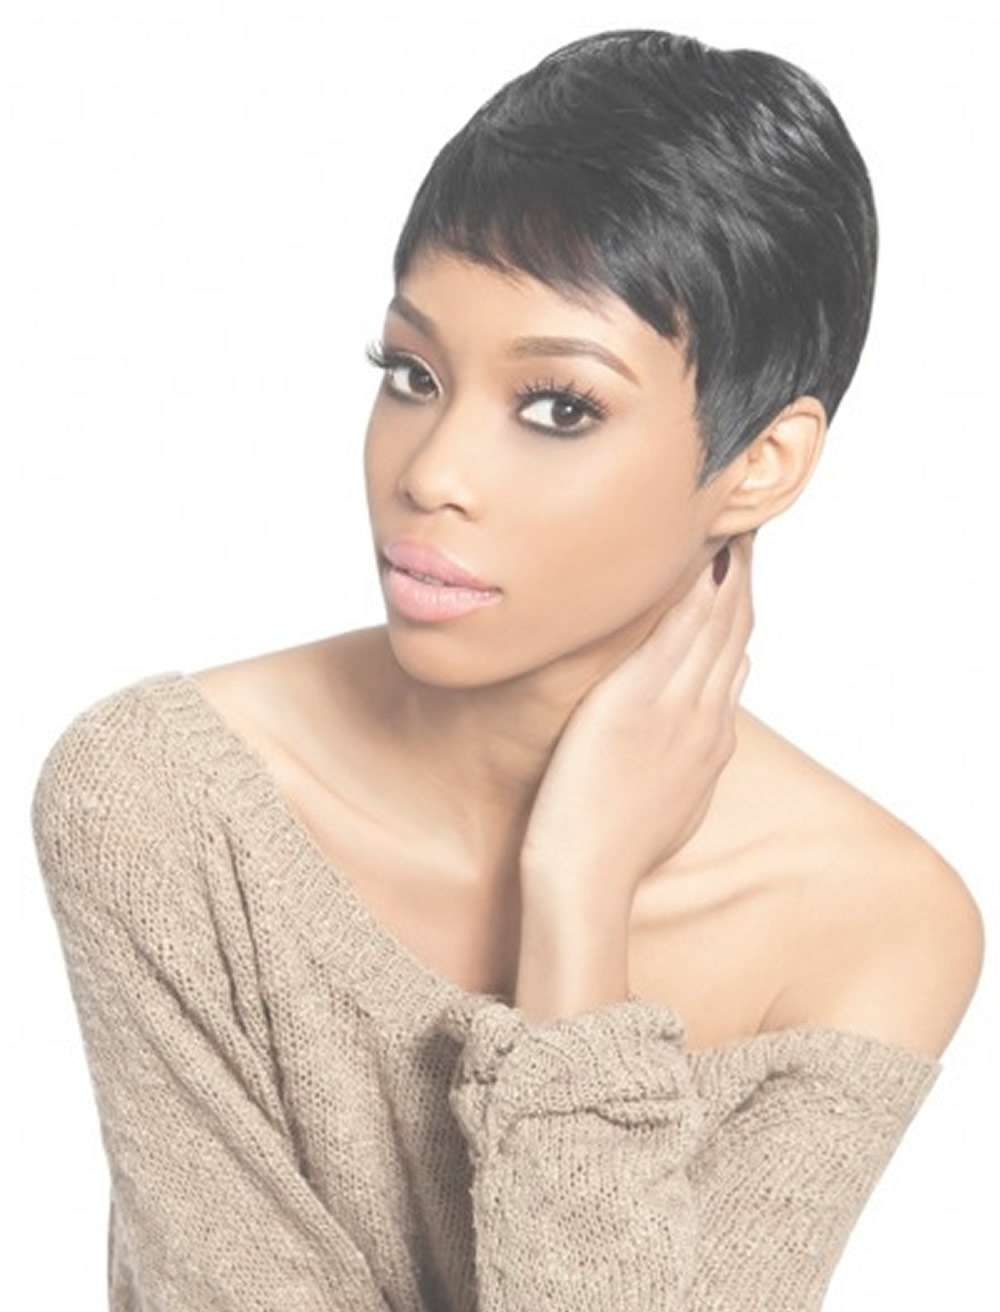 2018 Short Haircuts For Black Women – 57 Pixie Short Black Hair Ideas Intended For Most Popular Black Girl Pixie Hairstyles (View 7 of 15)